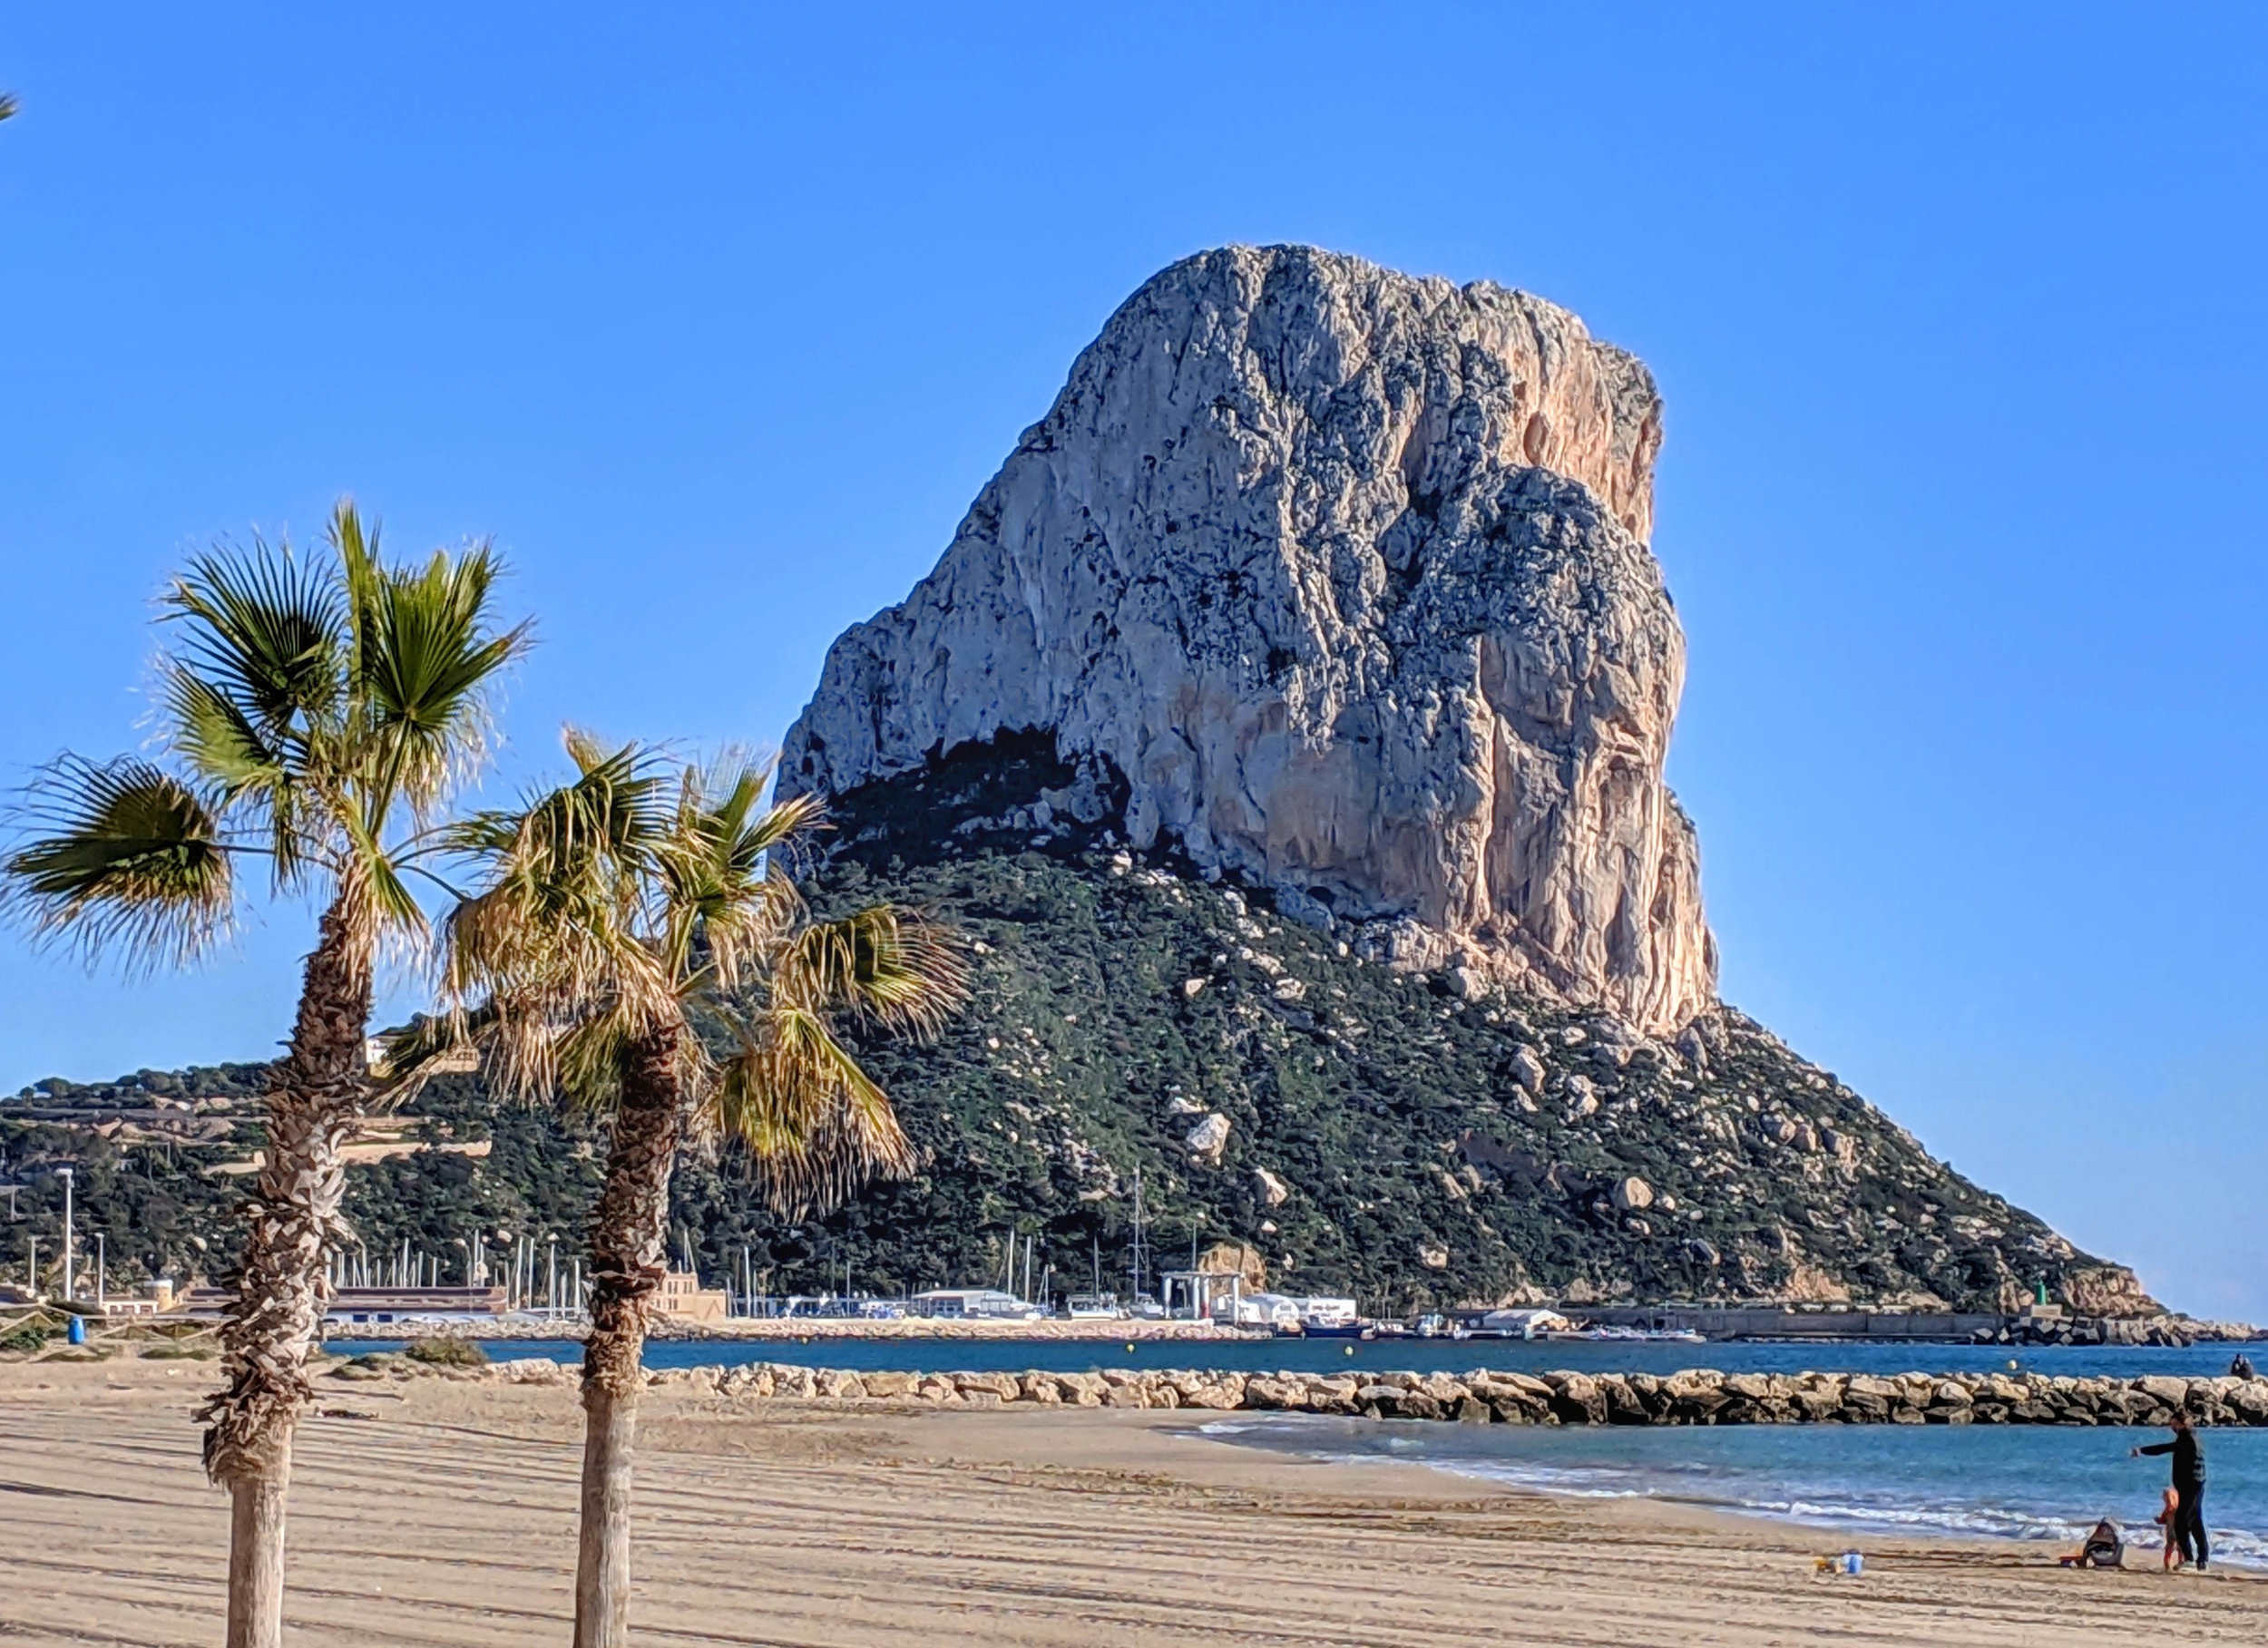 Scenic Calpe, with a big ol' lump a rock